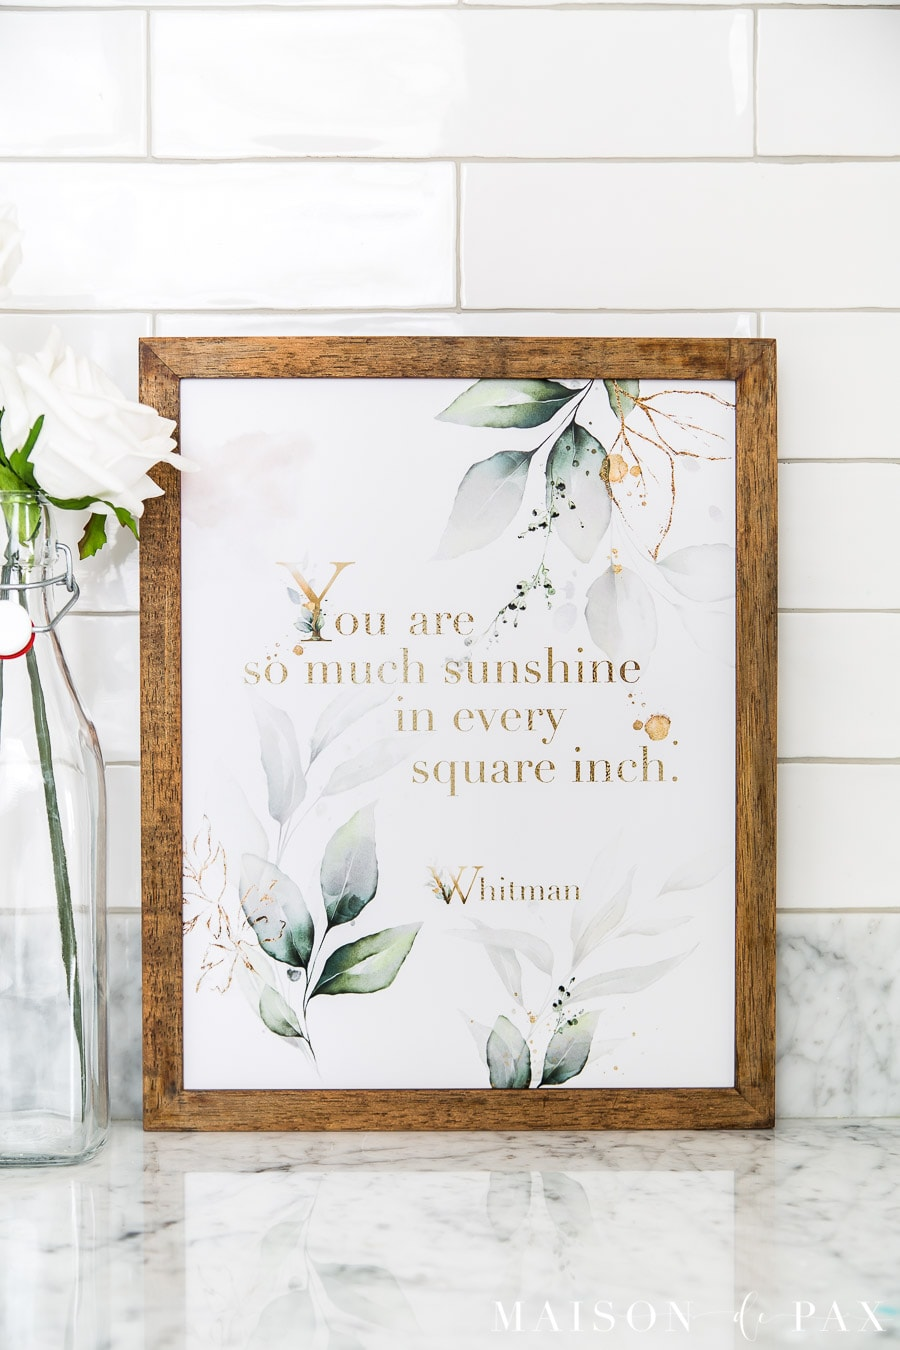 wooden frame with sunshine quote art featuring gold and green leaves | Maison de Pax